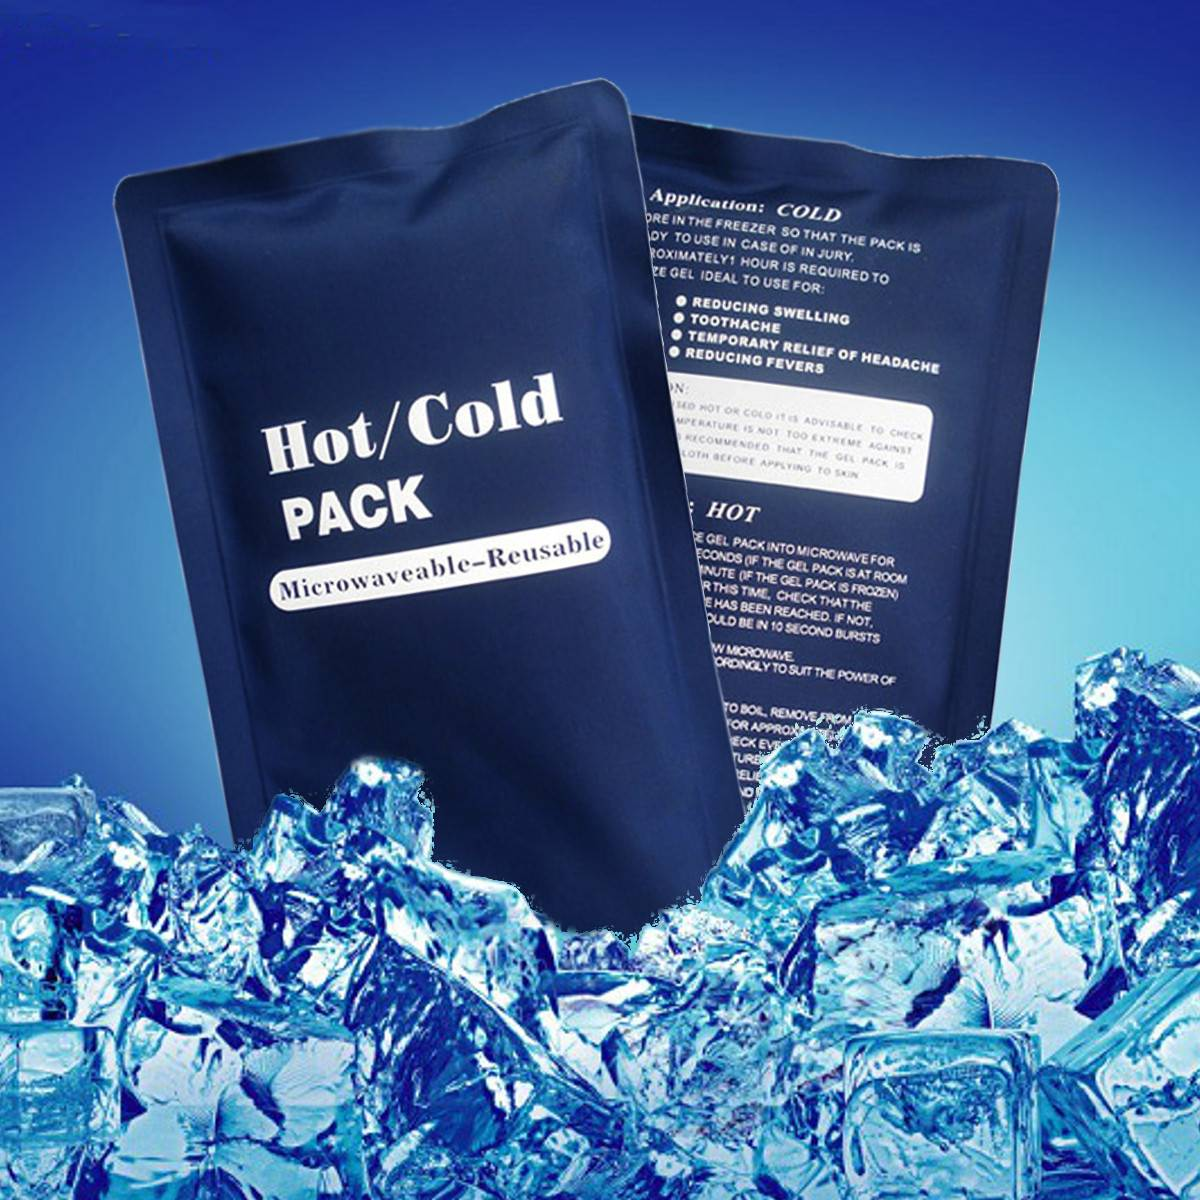 1Pc 23x13cm Reusable Heat Cool Hot Cold Packs Ice Bag Cool Bag Warm Pack Sports Muscle Back Pain Relief New